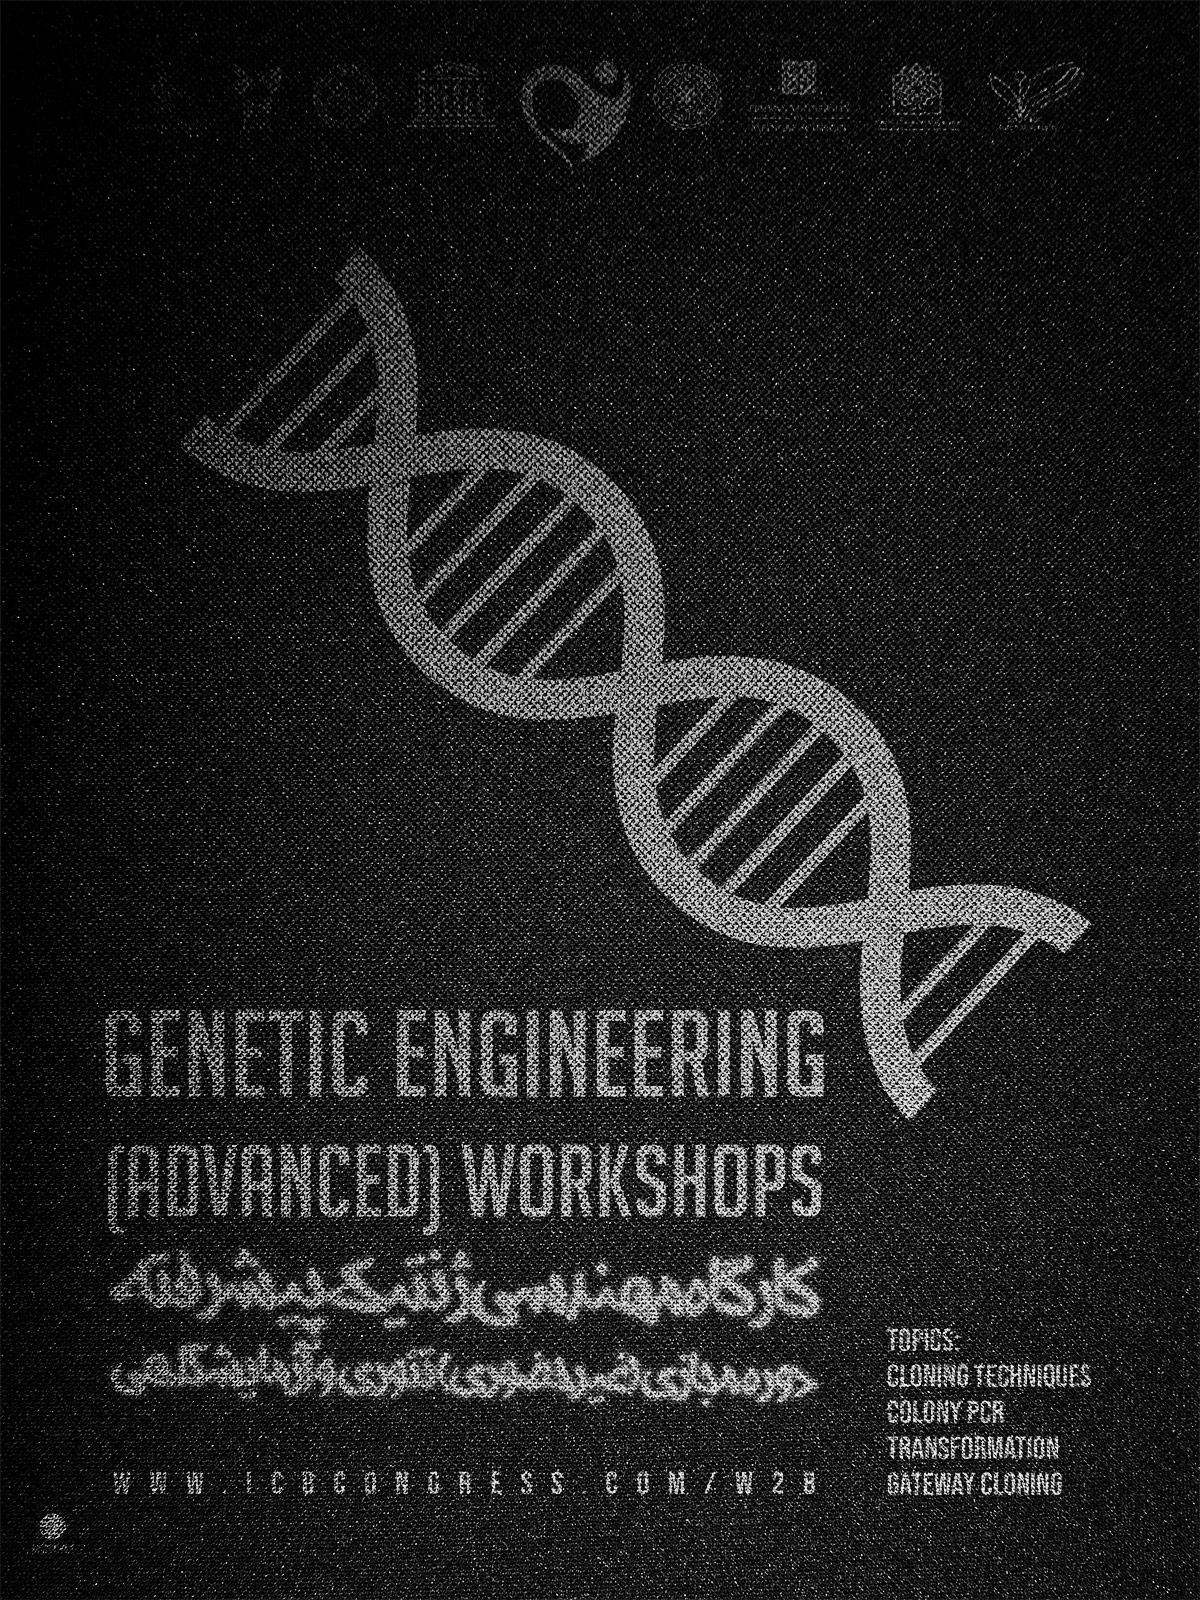 Genetic Engineering (Advanced) Workshops